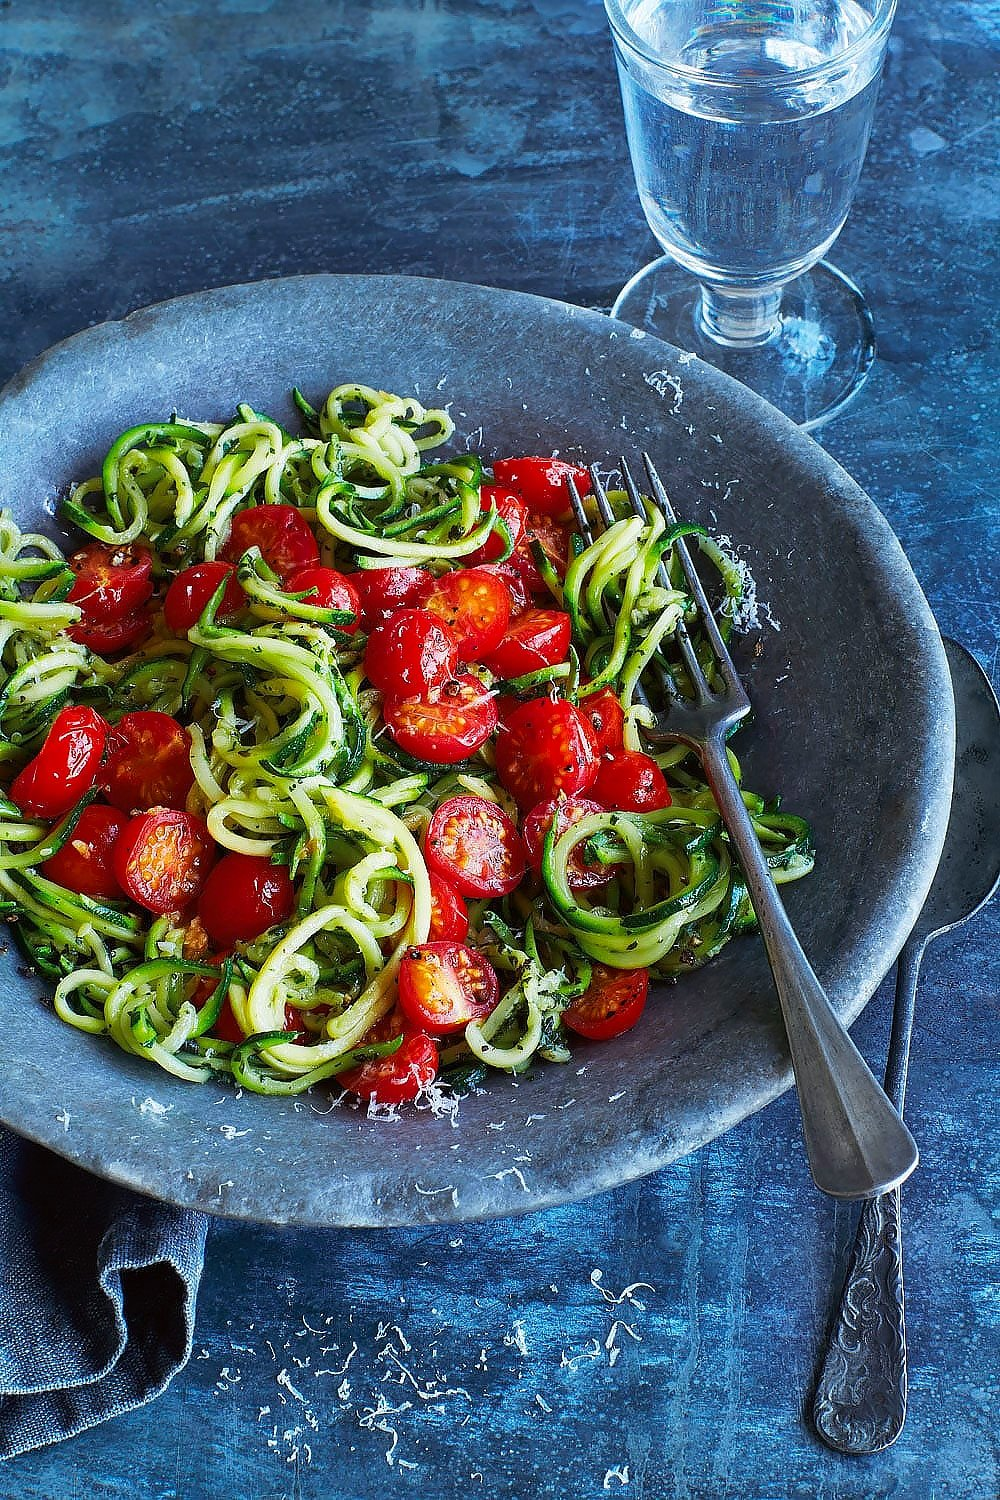 Annabel Karmel's courgette spaghetti, served into a bowl with a fork and spoon and a glass of water.